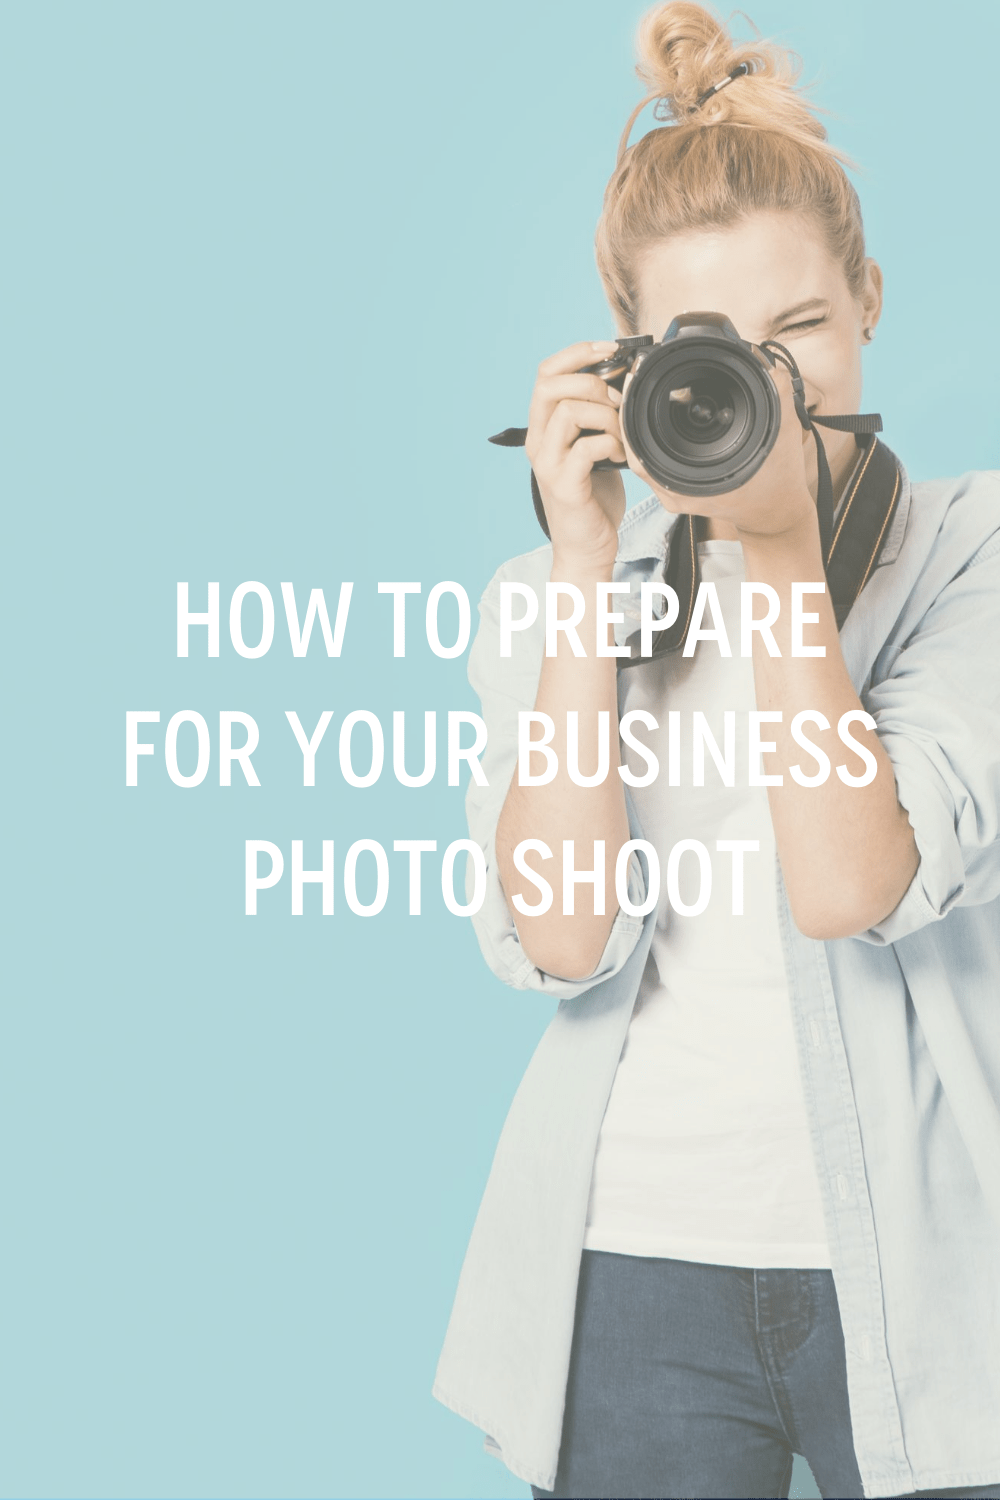 How to propare for your business photo shoot